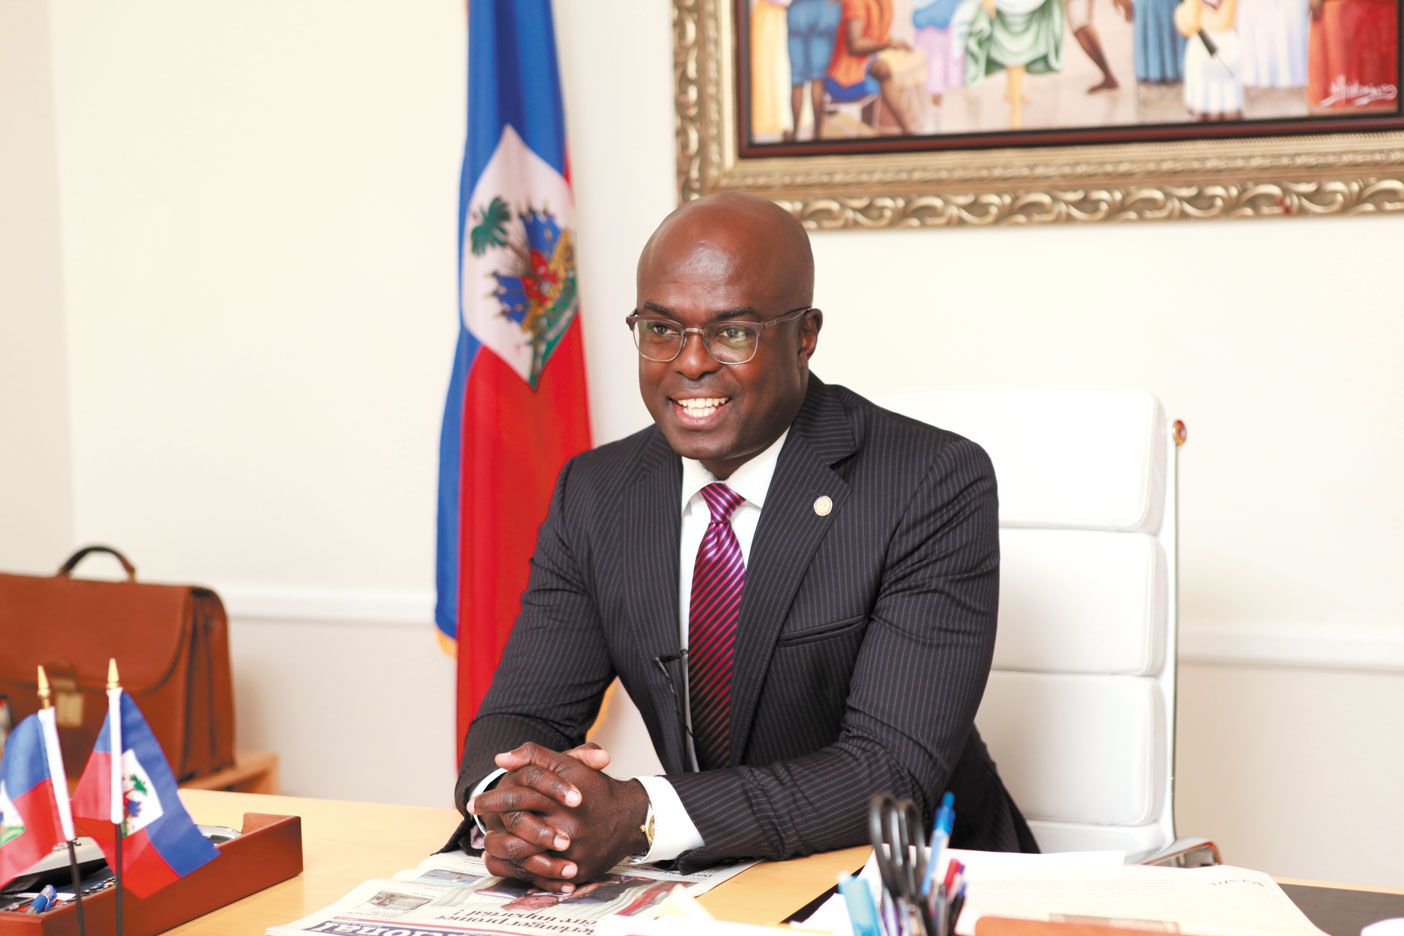 Gandy Thomas Haiti's consul general seeks university, sister city links